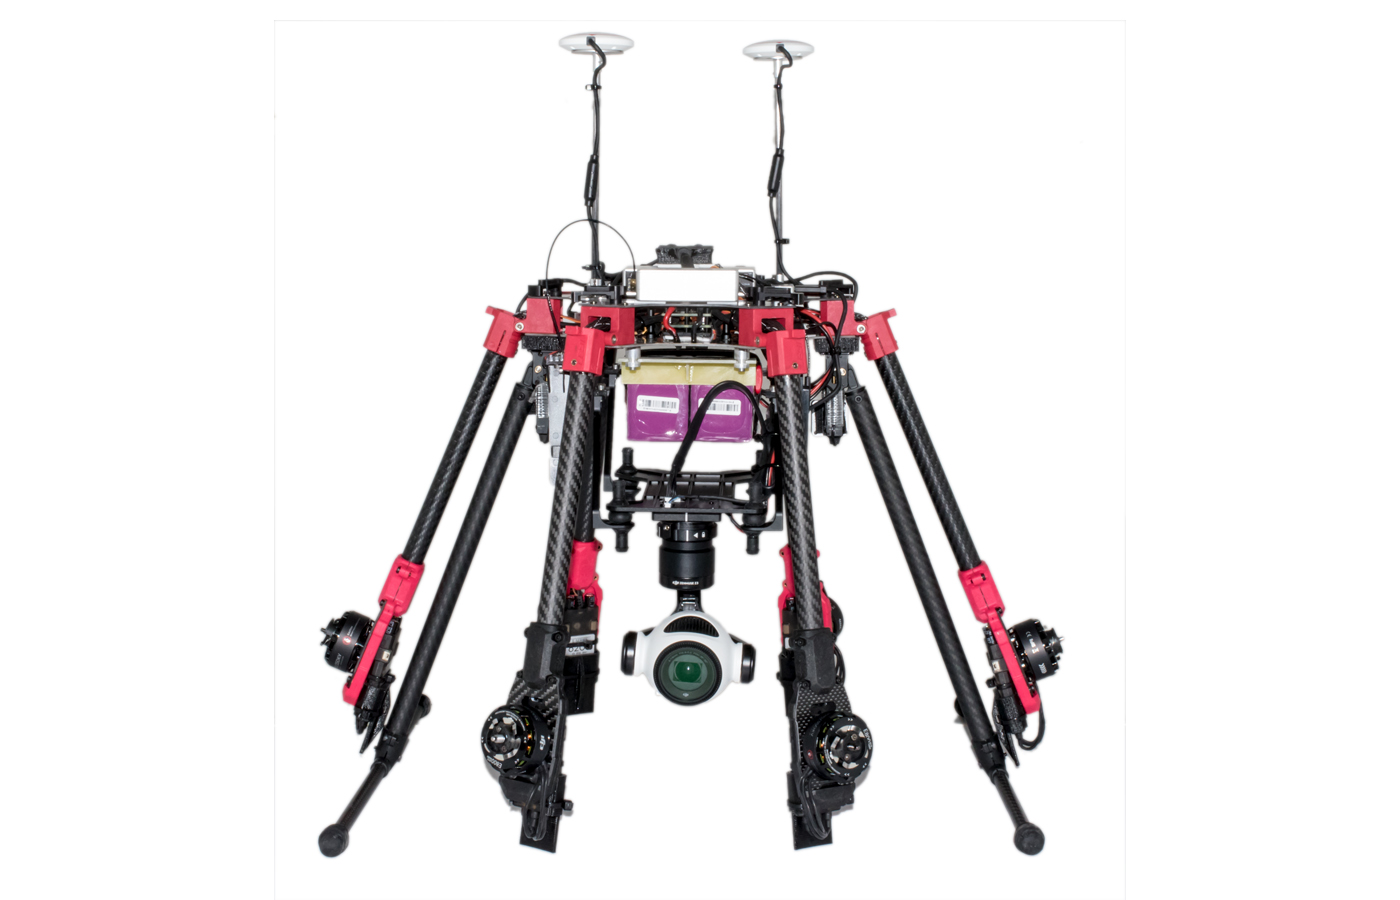 ACG Kategorie C-IV Hexacopter Umbrella 750 RTF